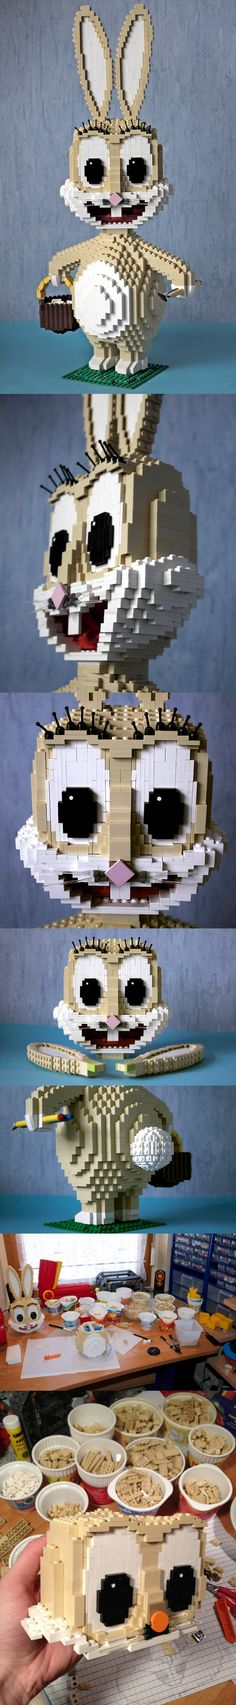 Brickbunny - Happy Easter to all of you! #LEGO #Easter #Bunny